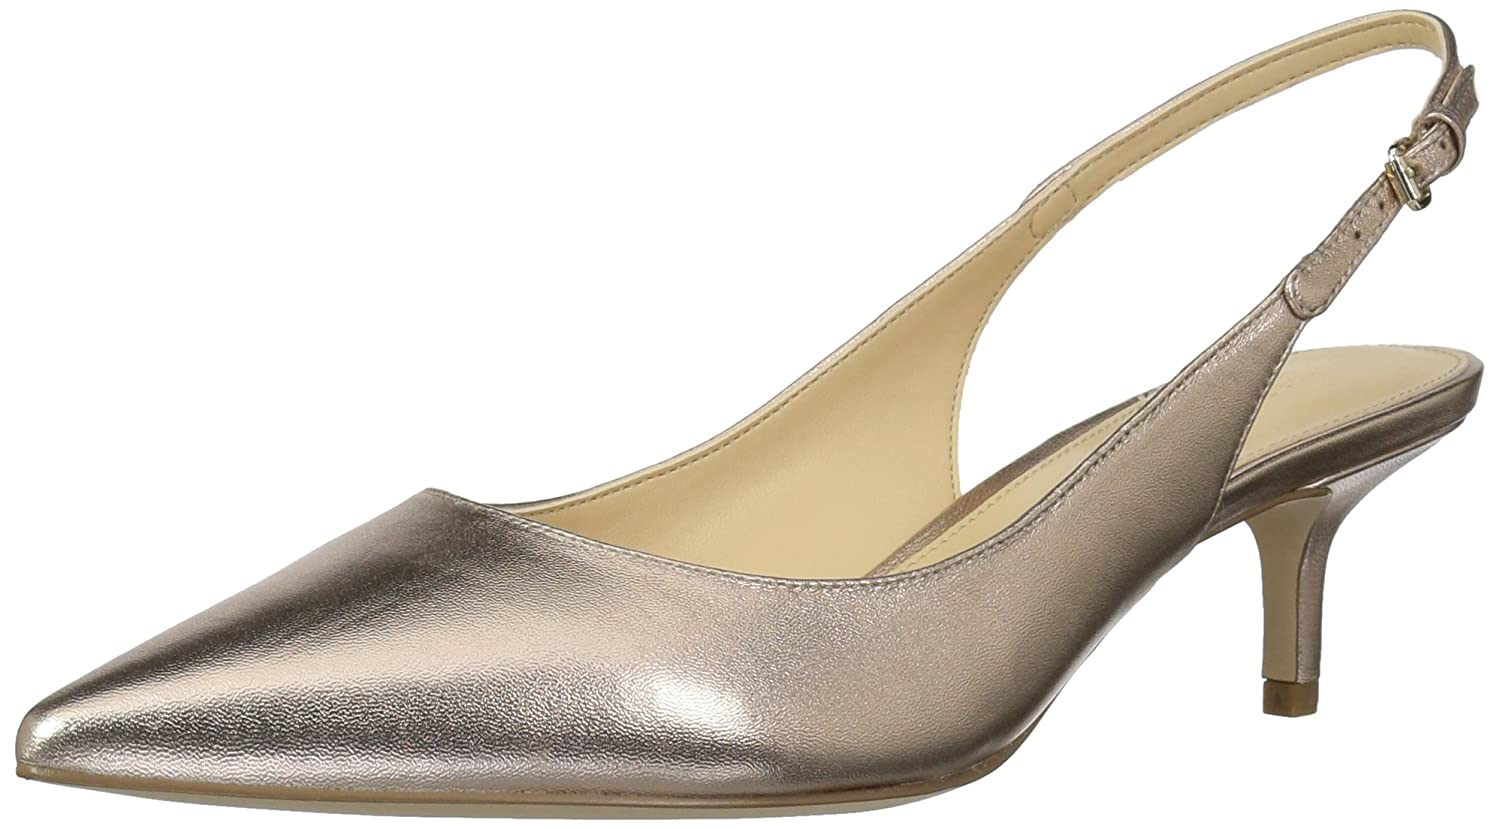 Ivanka Trump Women's Aleth Pump B079TQSF5M 10 B(M) US|Light Pink Leather